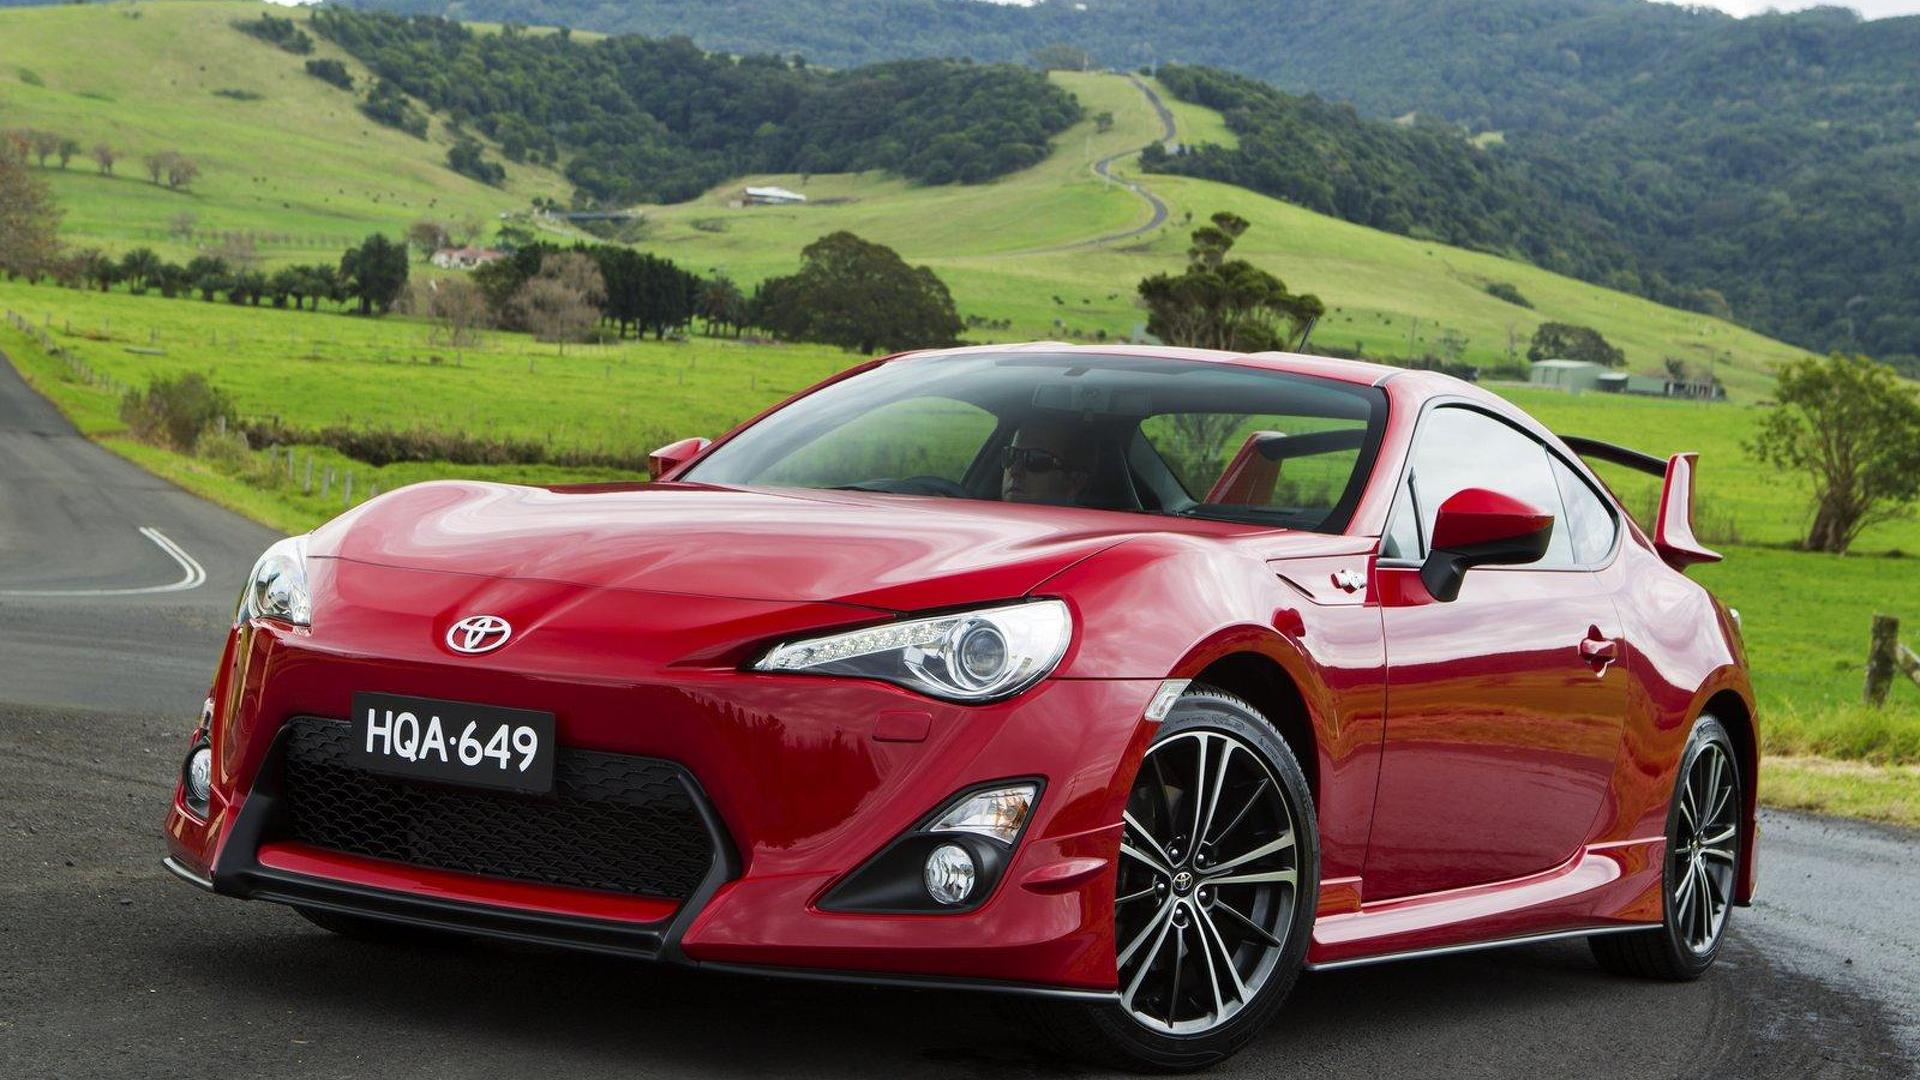 Merveilleux Toyota GT 86 Chief Confirms Supercharged U0026 Turbocharged Variants Under  Consideration   Report